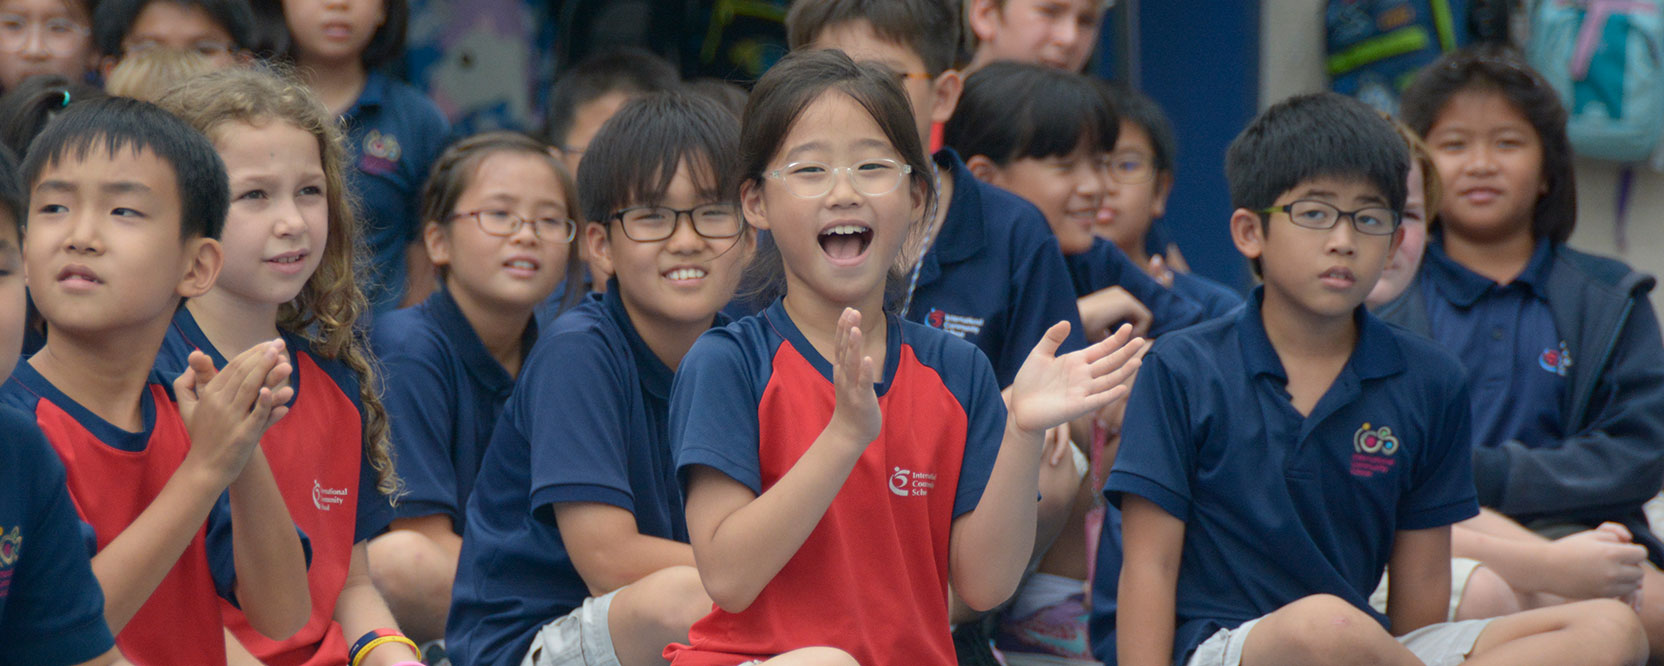 ICS Singapore student clapping happily